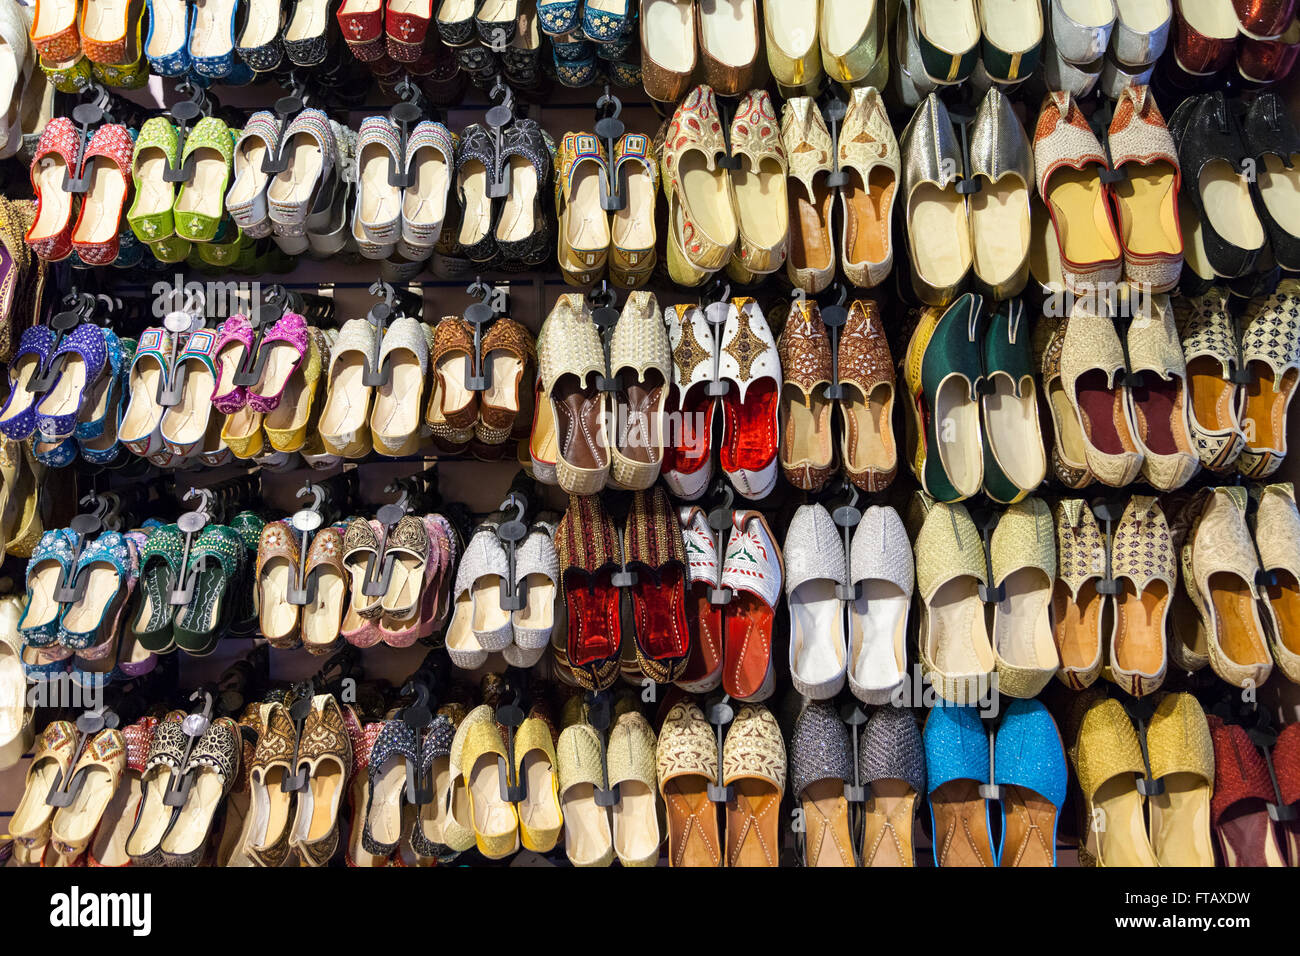 24d24038f424 Indian and Oriental shoes and slippers on display in footwear shop ...